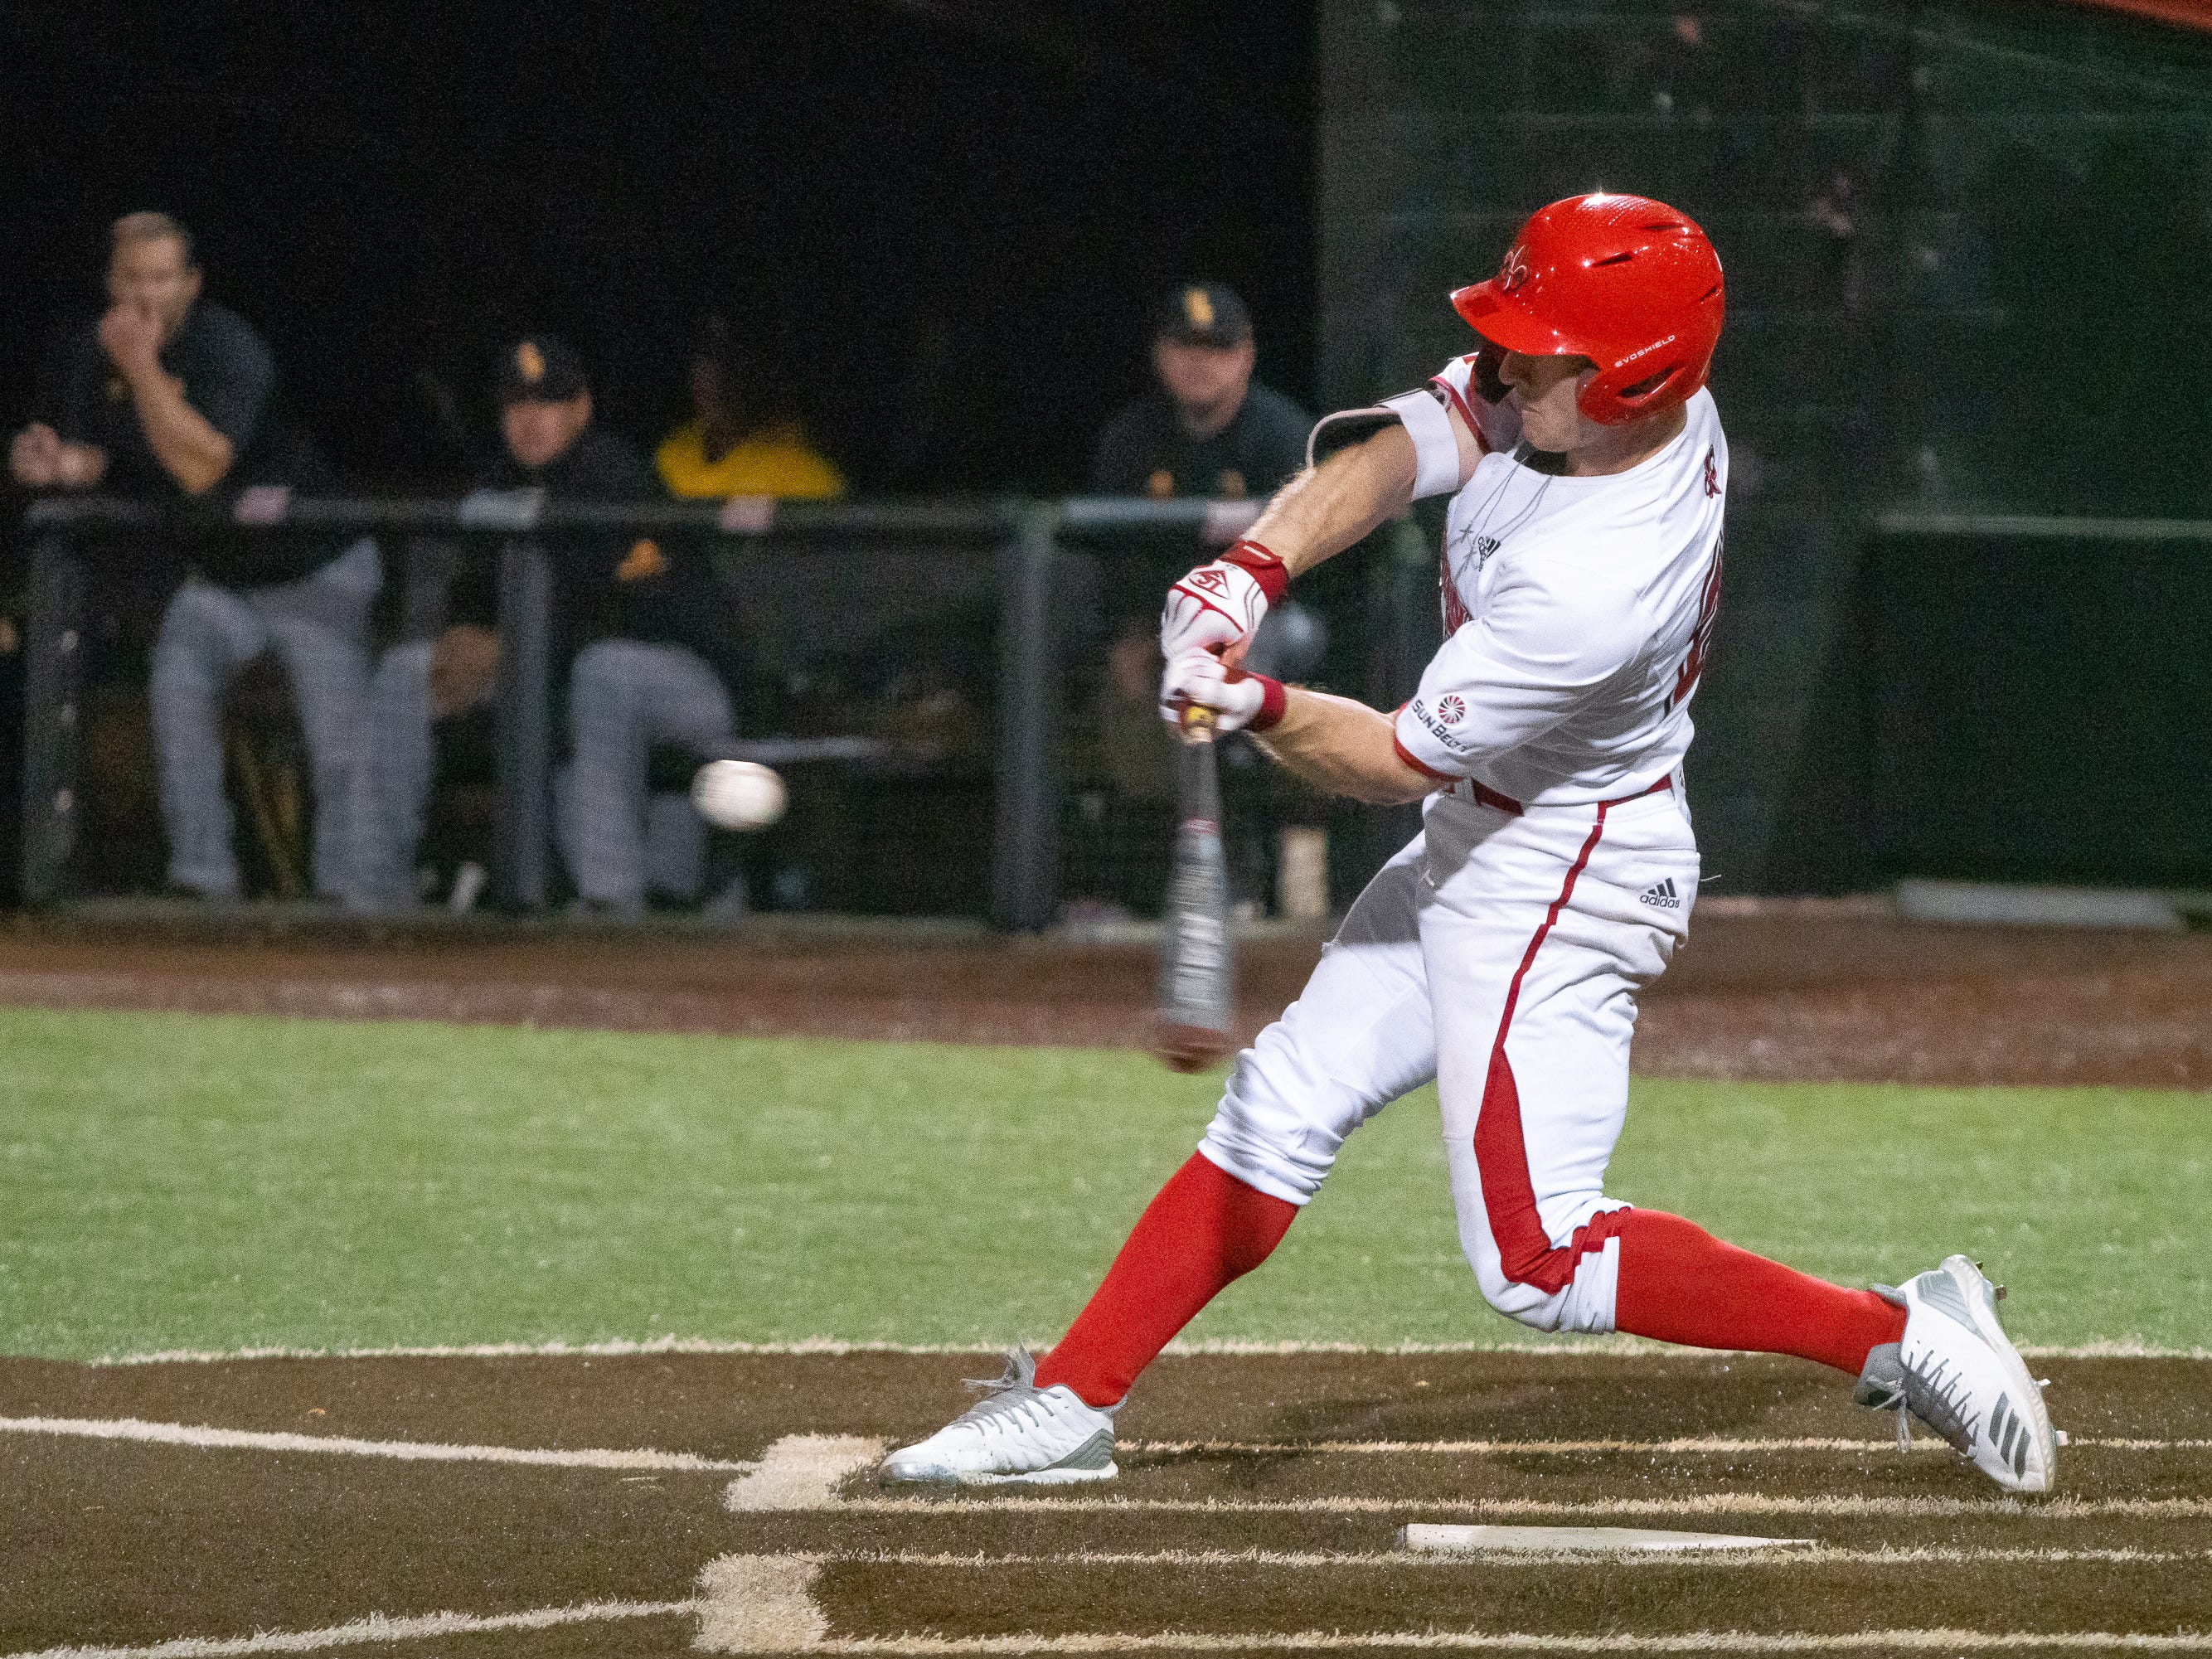 """UL's Daniel Lahare connects with the incoming pitch as the Ragin' Cajuns take on the Southern Miss Golden Eagles at M.L. """"Tigue"""" Moore Field on Wednesday, March 13, 2019."""